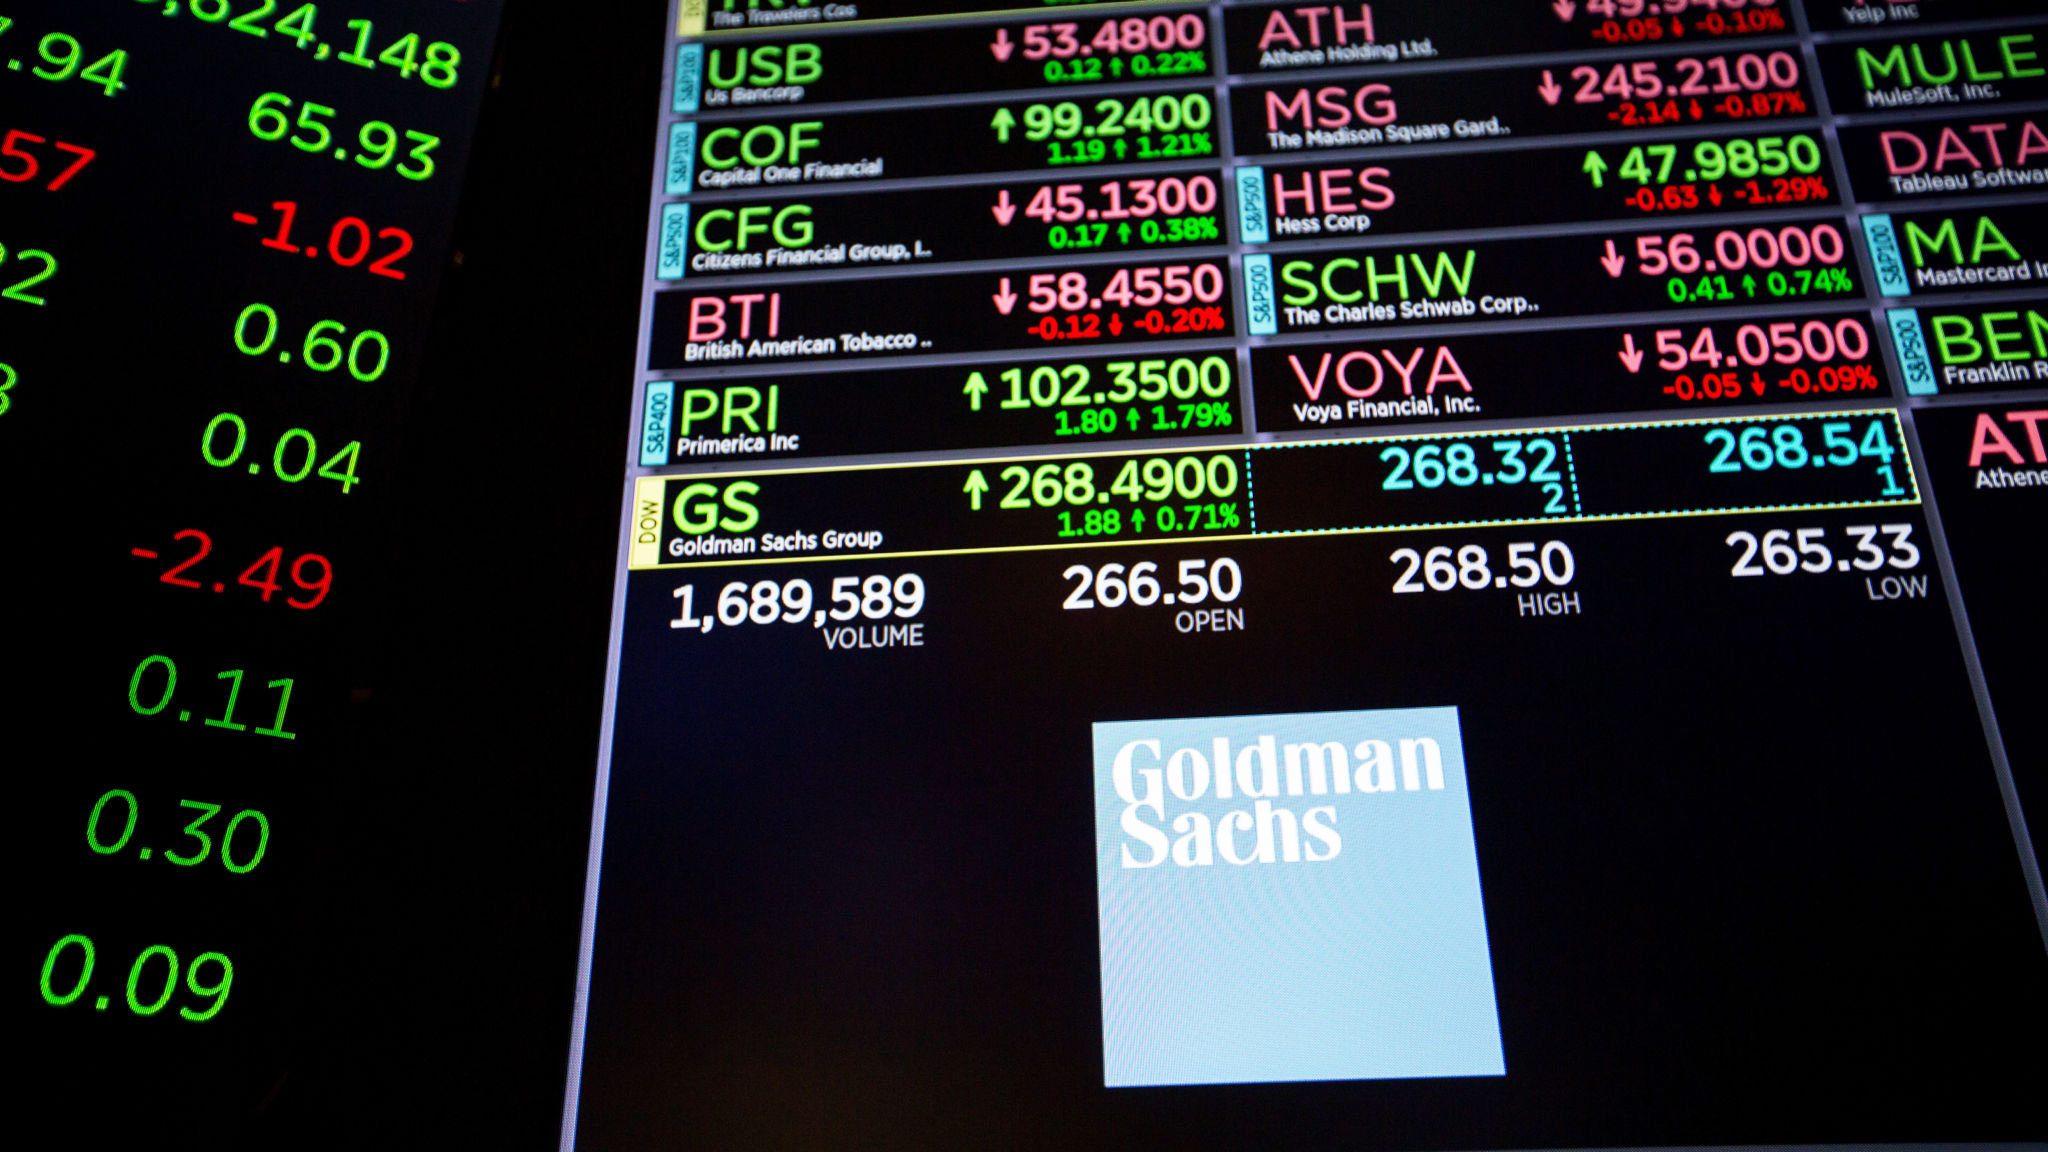 Goldman Sachs to speed up push into US wealth management